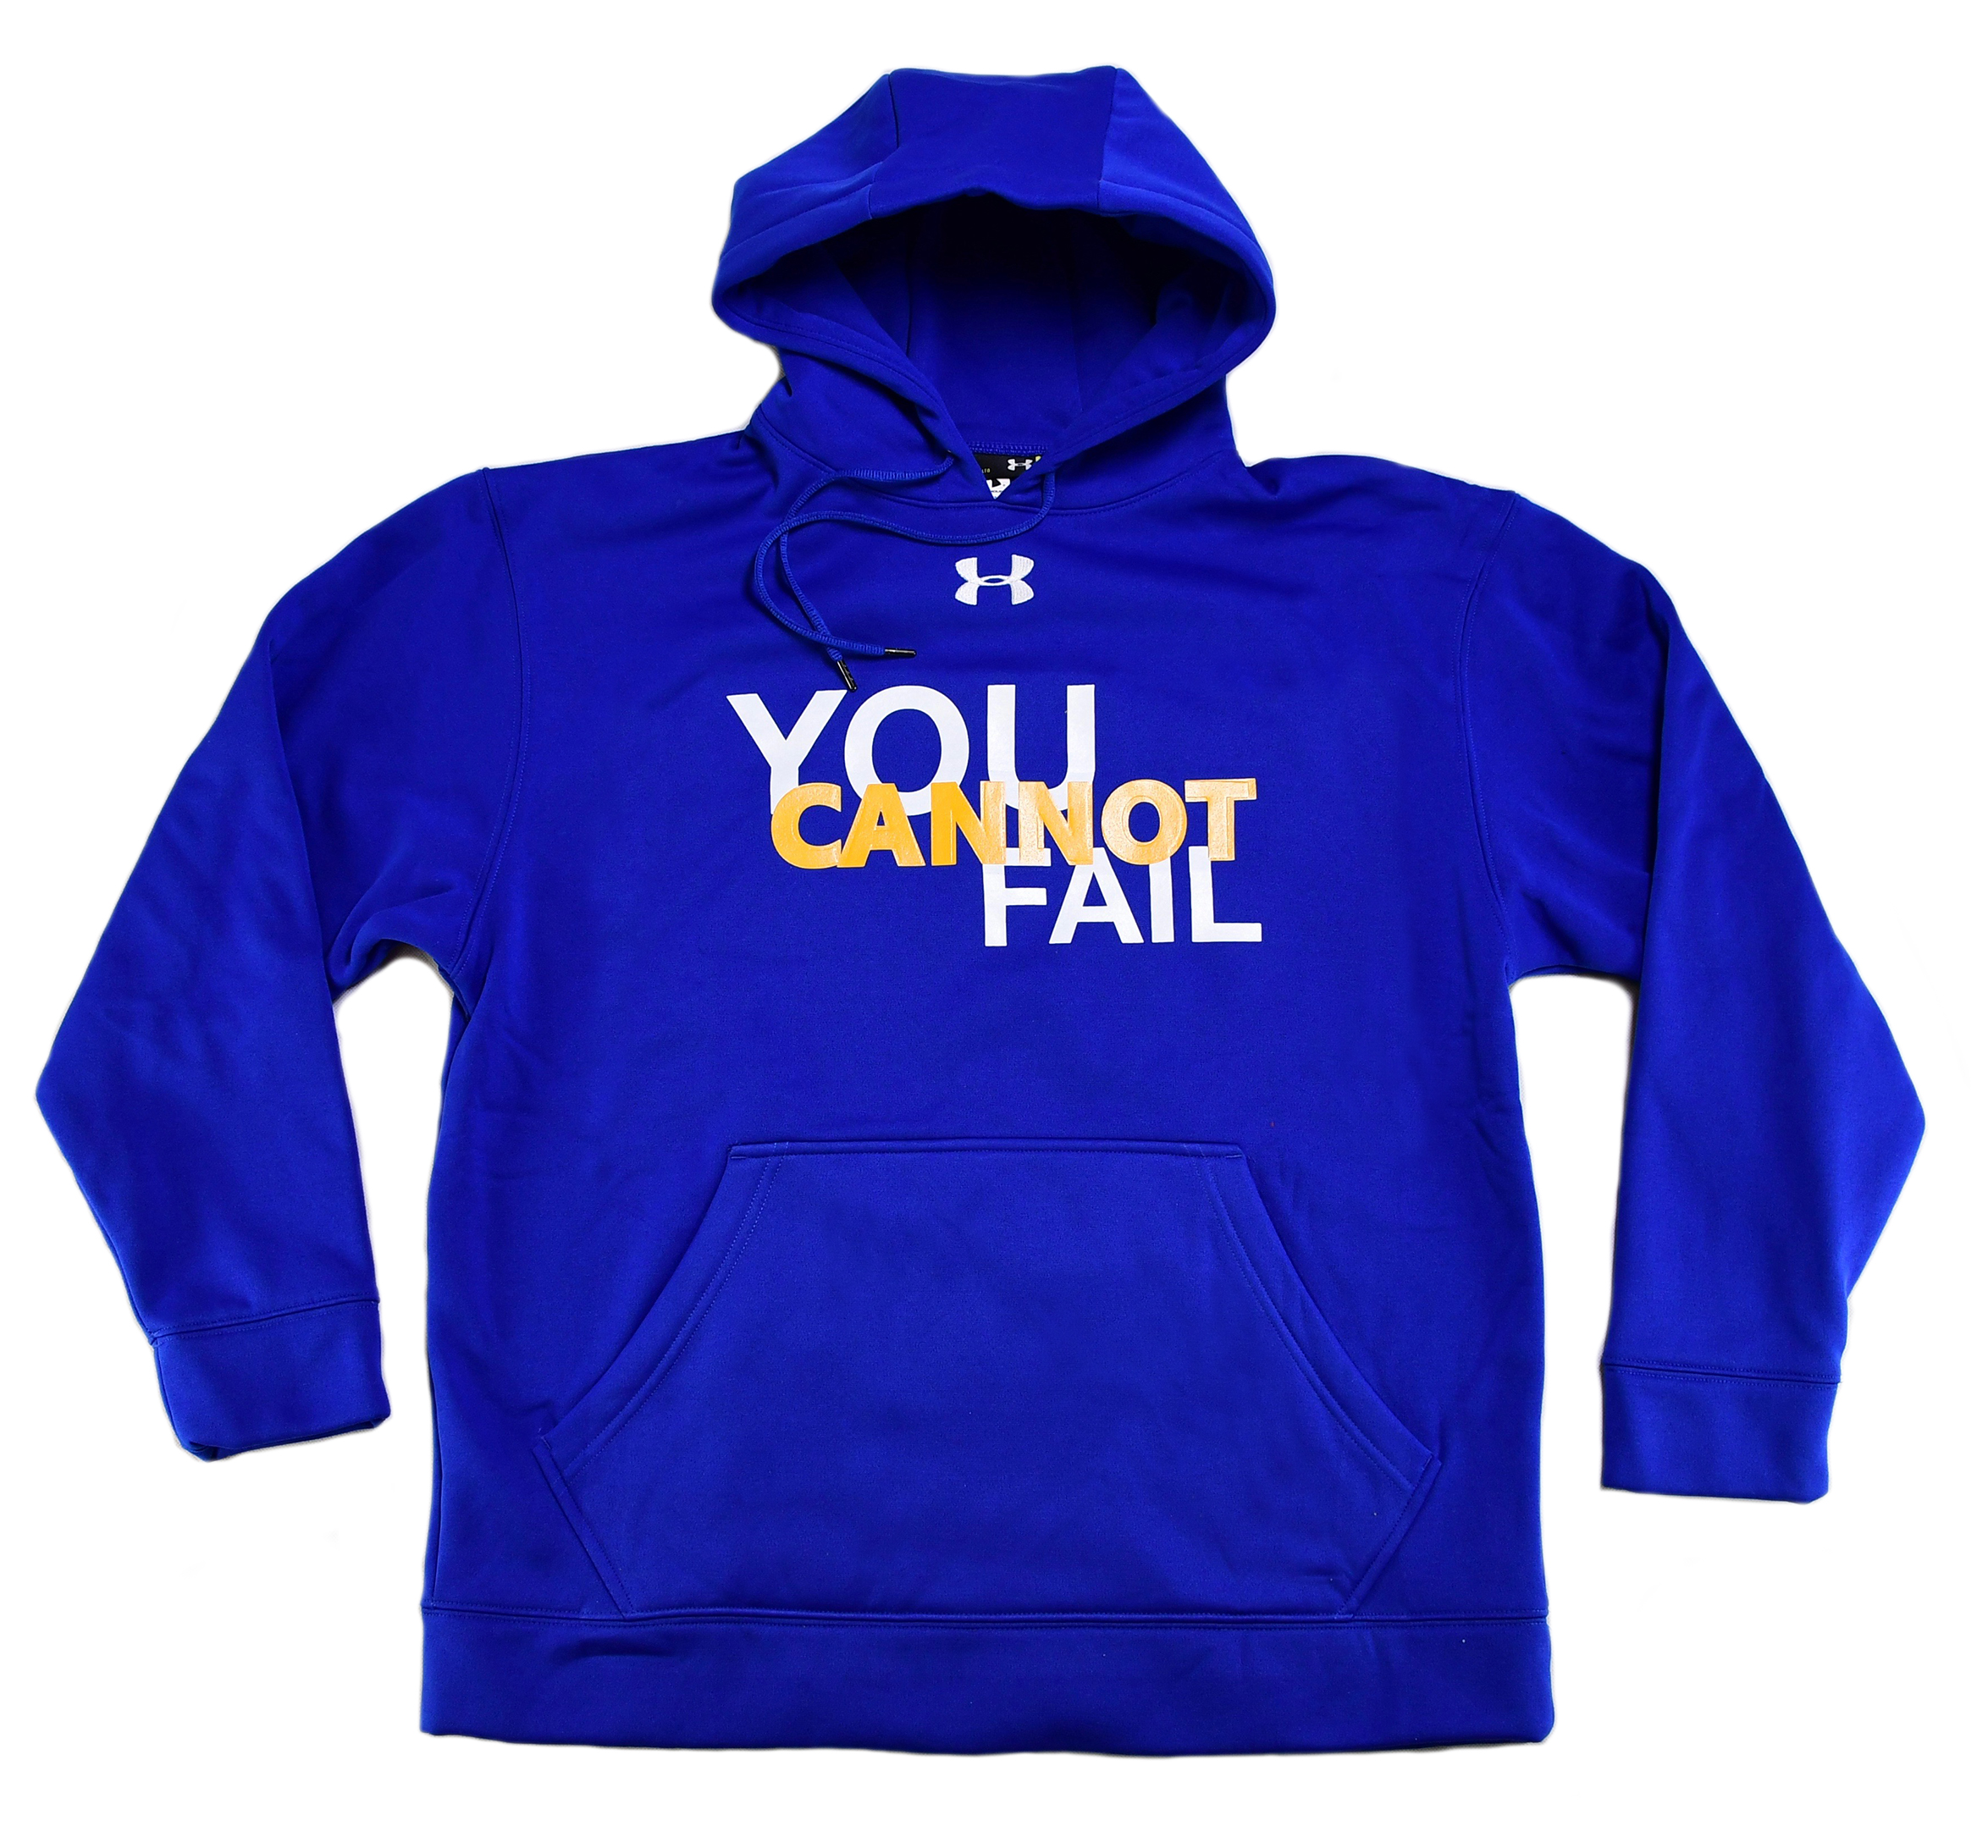 Under Armour® You Cannot Fail Hoodie - Available in Grey, Black, and Blue